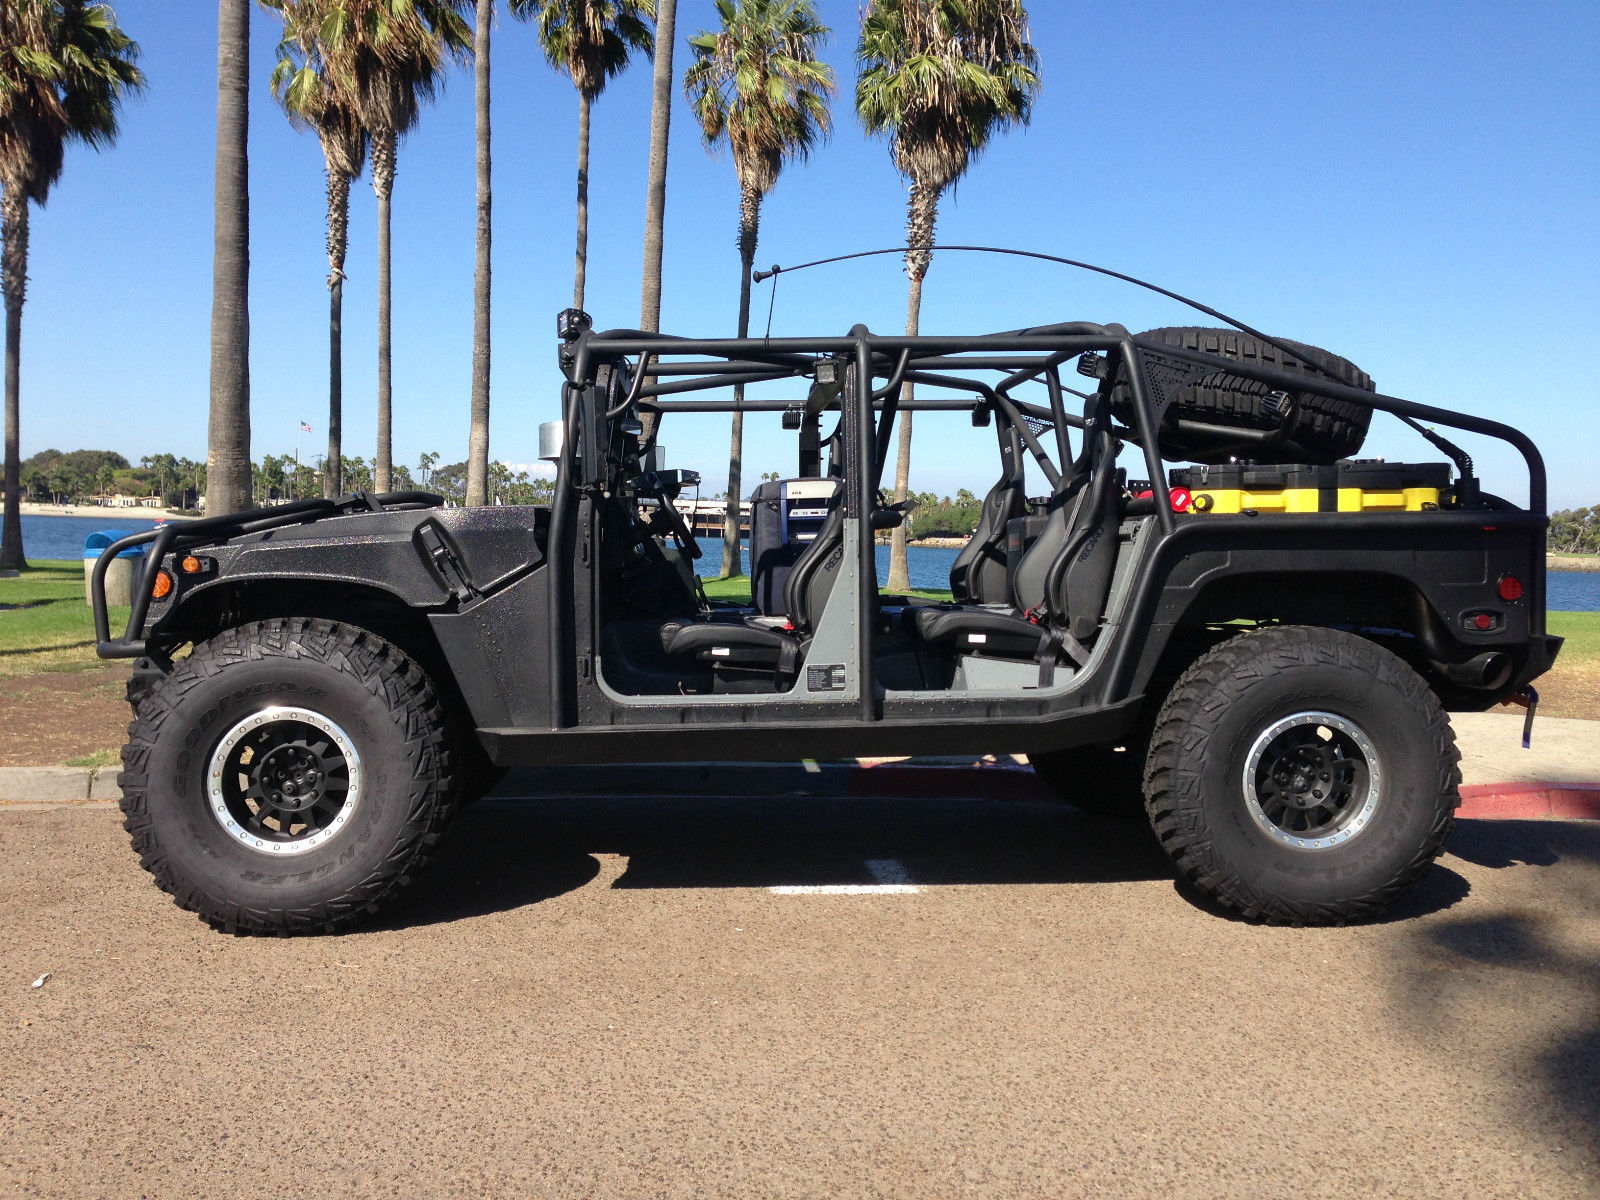 Durmax Hx Style In In Downpipe Web moreover Hmmwv Alpha Special Ops Duramax Turbo Diesel Allison Hummer H Humvee Hrsp together with F additionally Img further Trans Lines. on duramax fuel lines